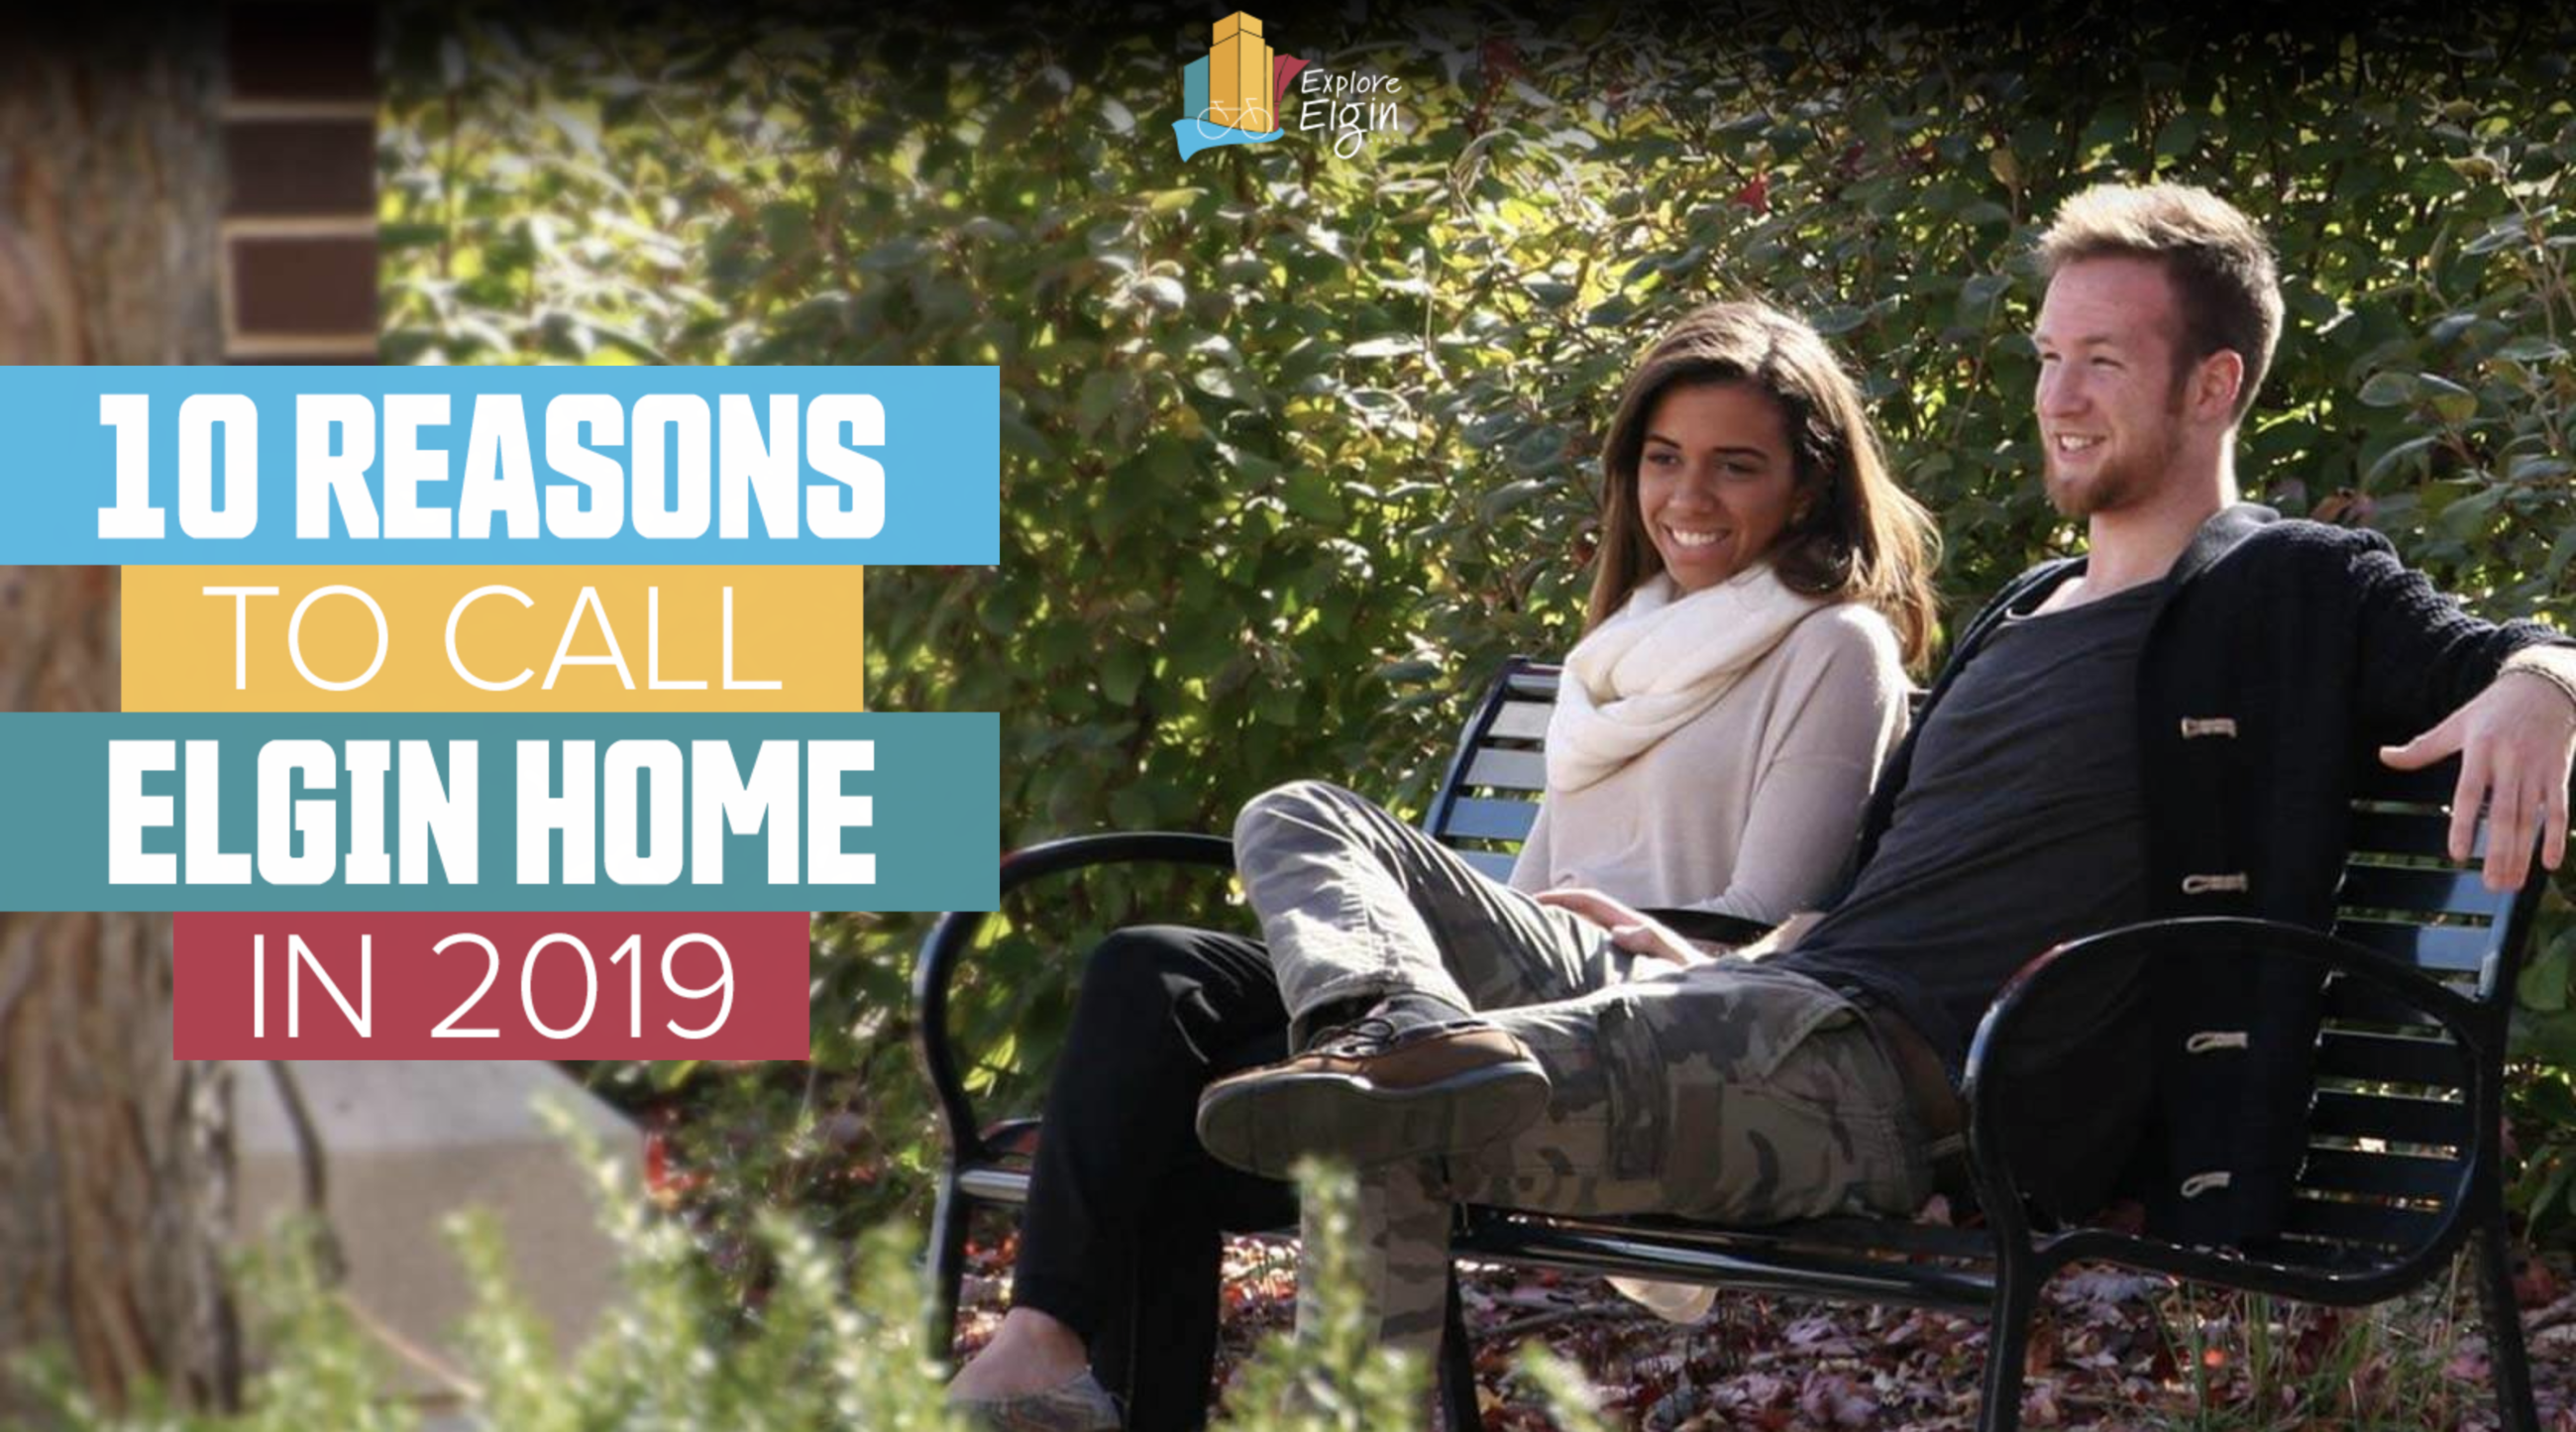 Couple on a bench in a park - 10 reasons to call Elgin home